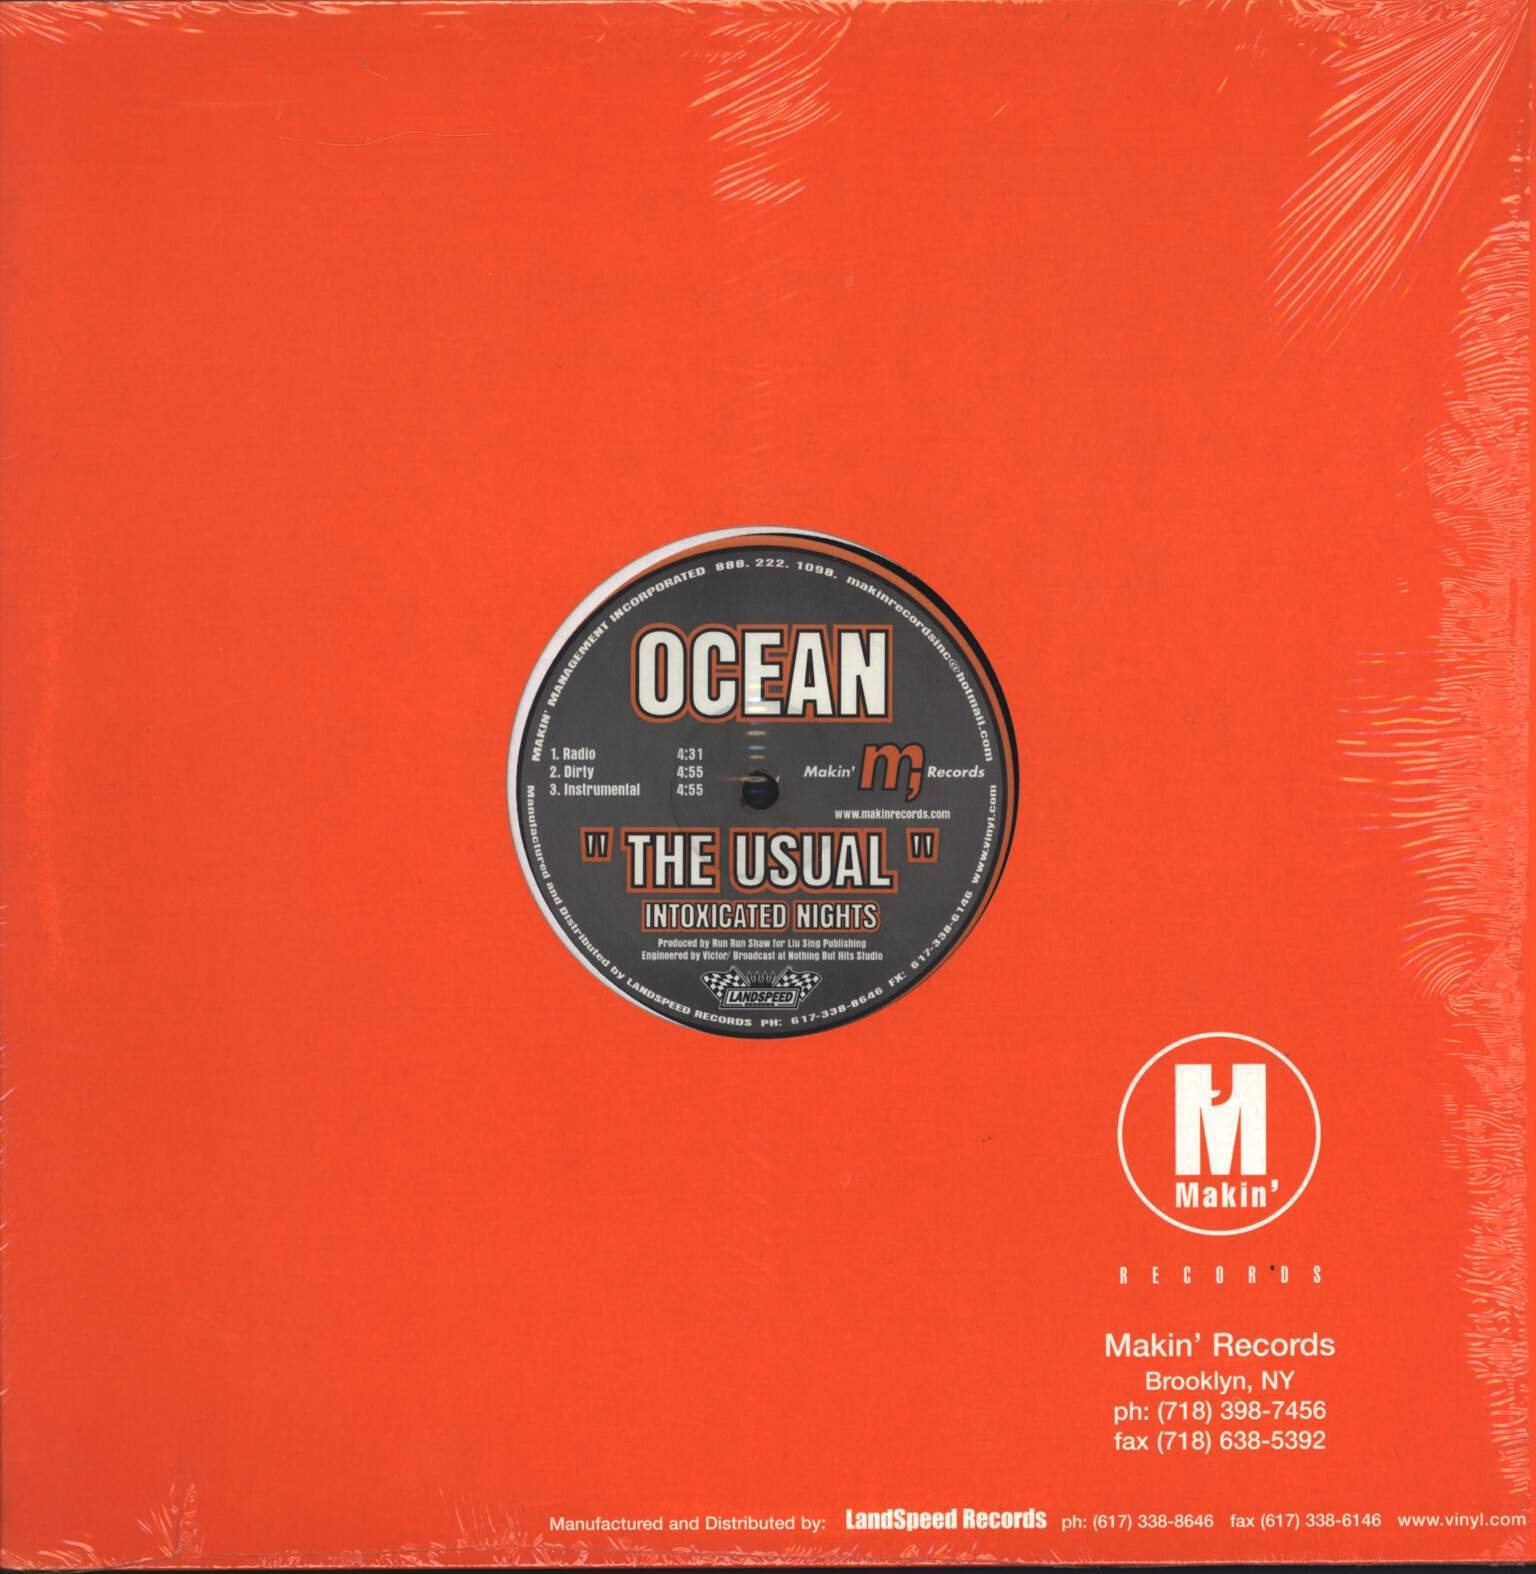 "Ocean: The Usual (Intoxicated Nights) / The Usual (Sober Nights), 12"" Maxi Single (Vinyl)"